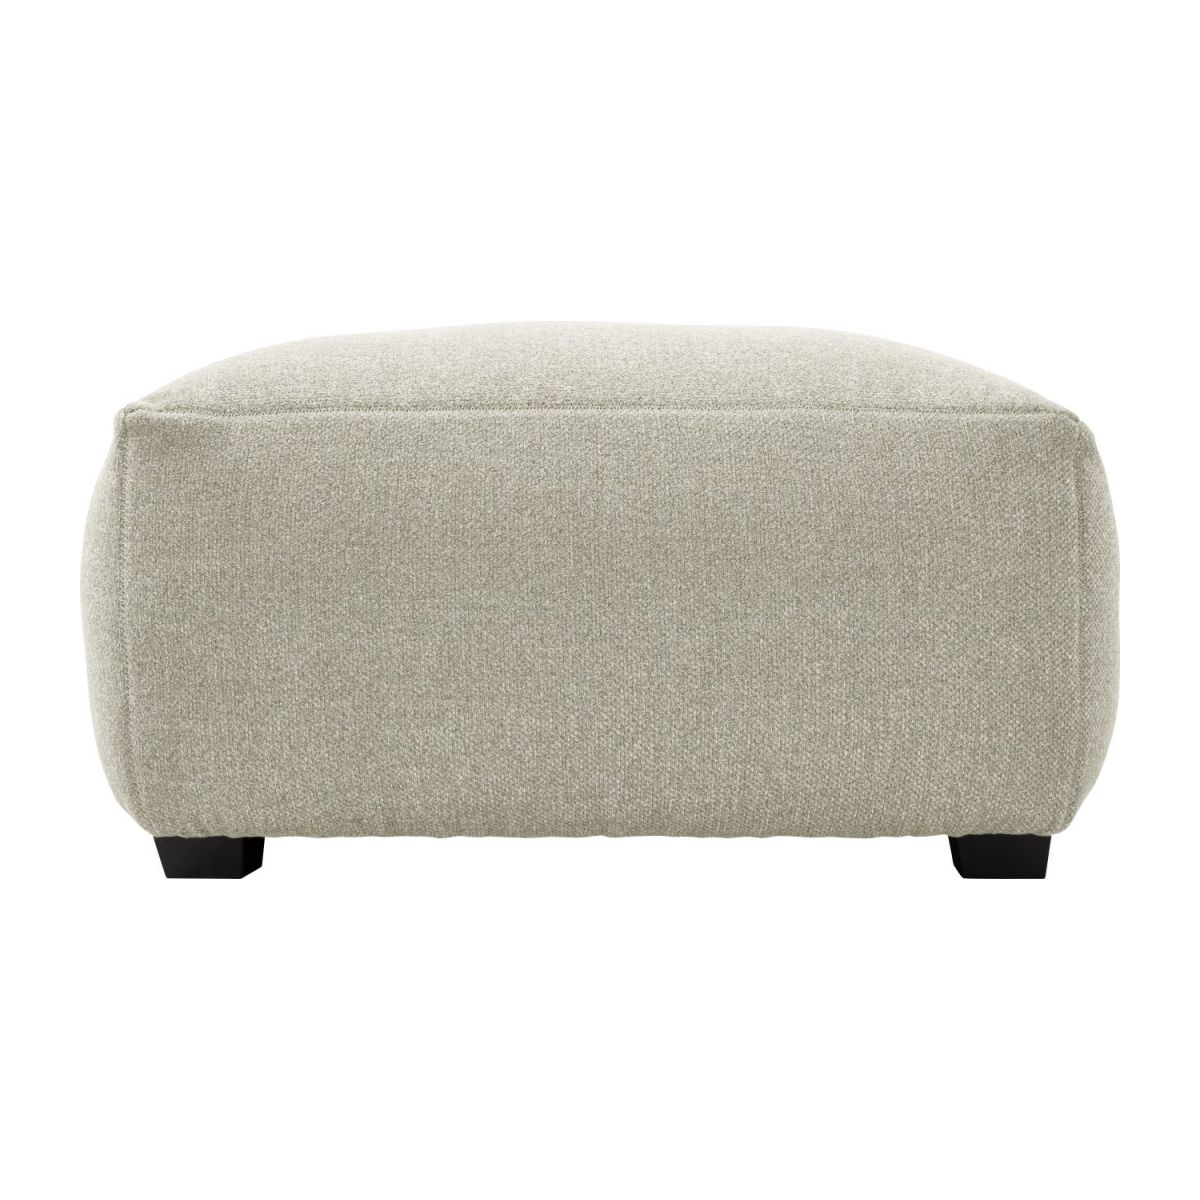 Footstool in Lecce fabric, nature n°5